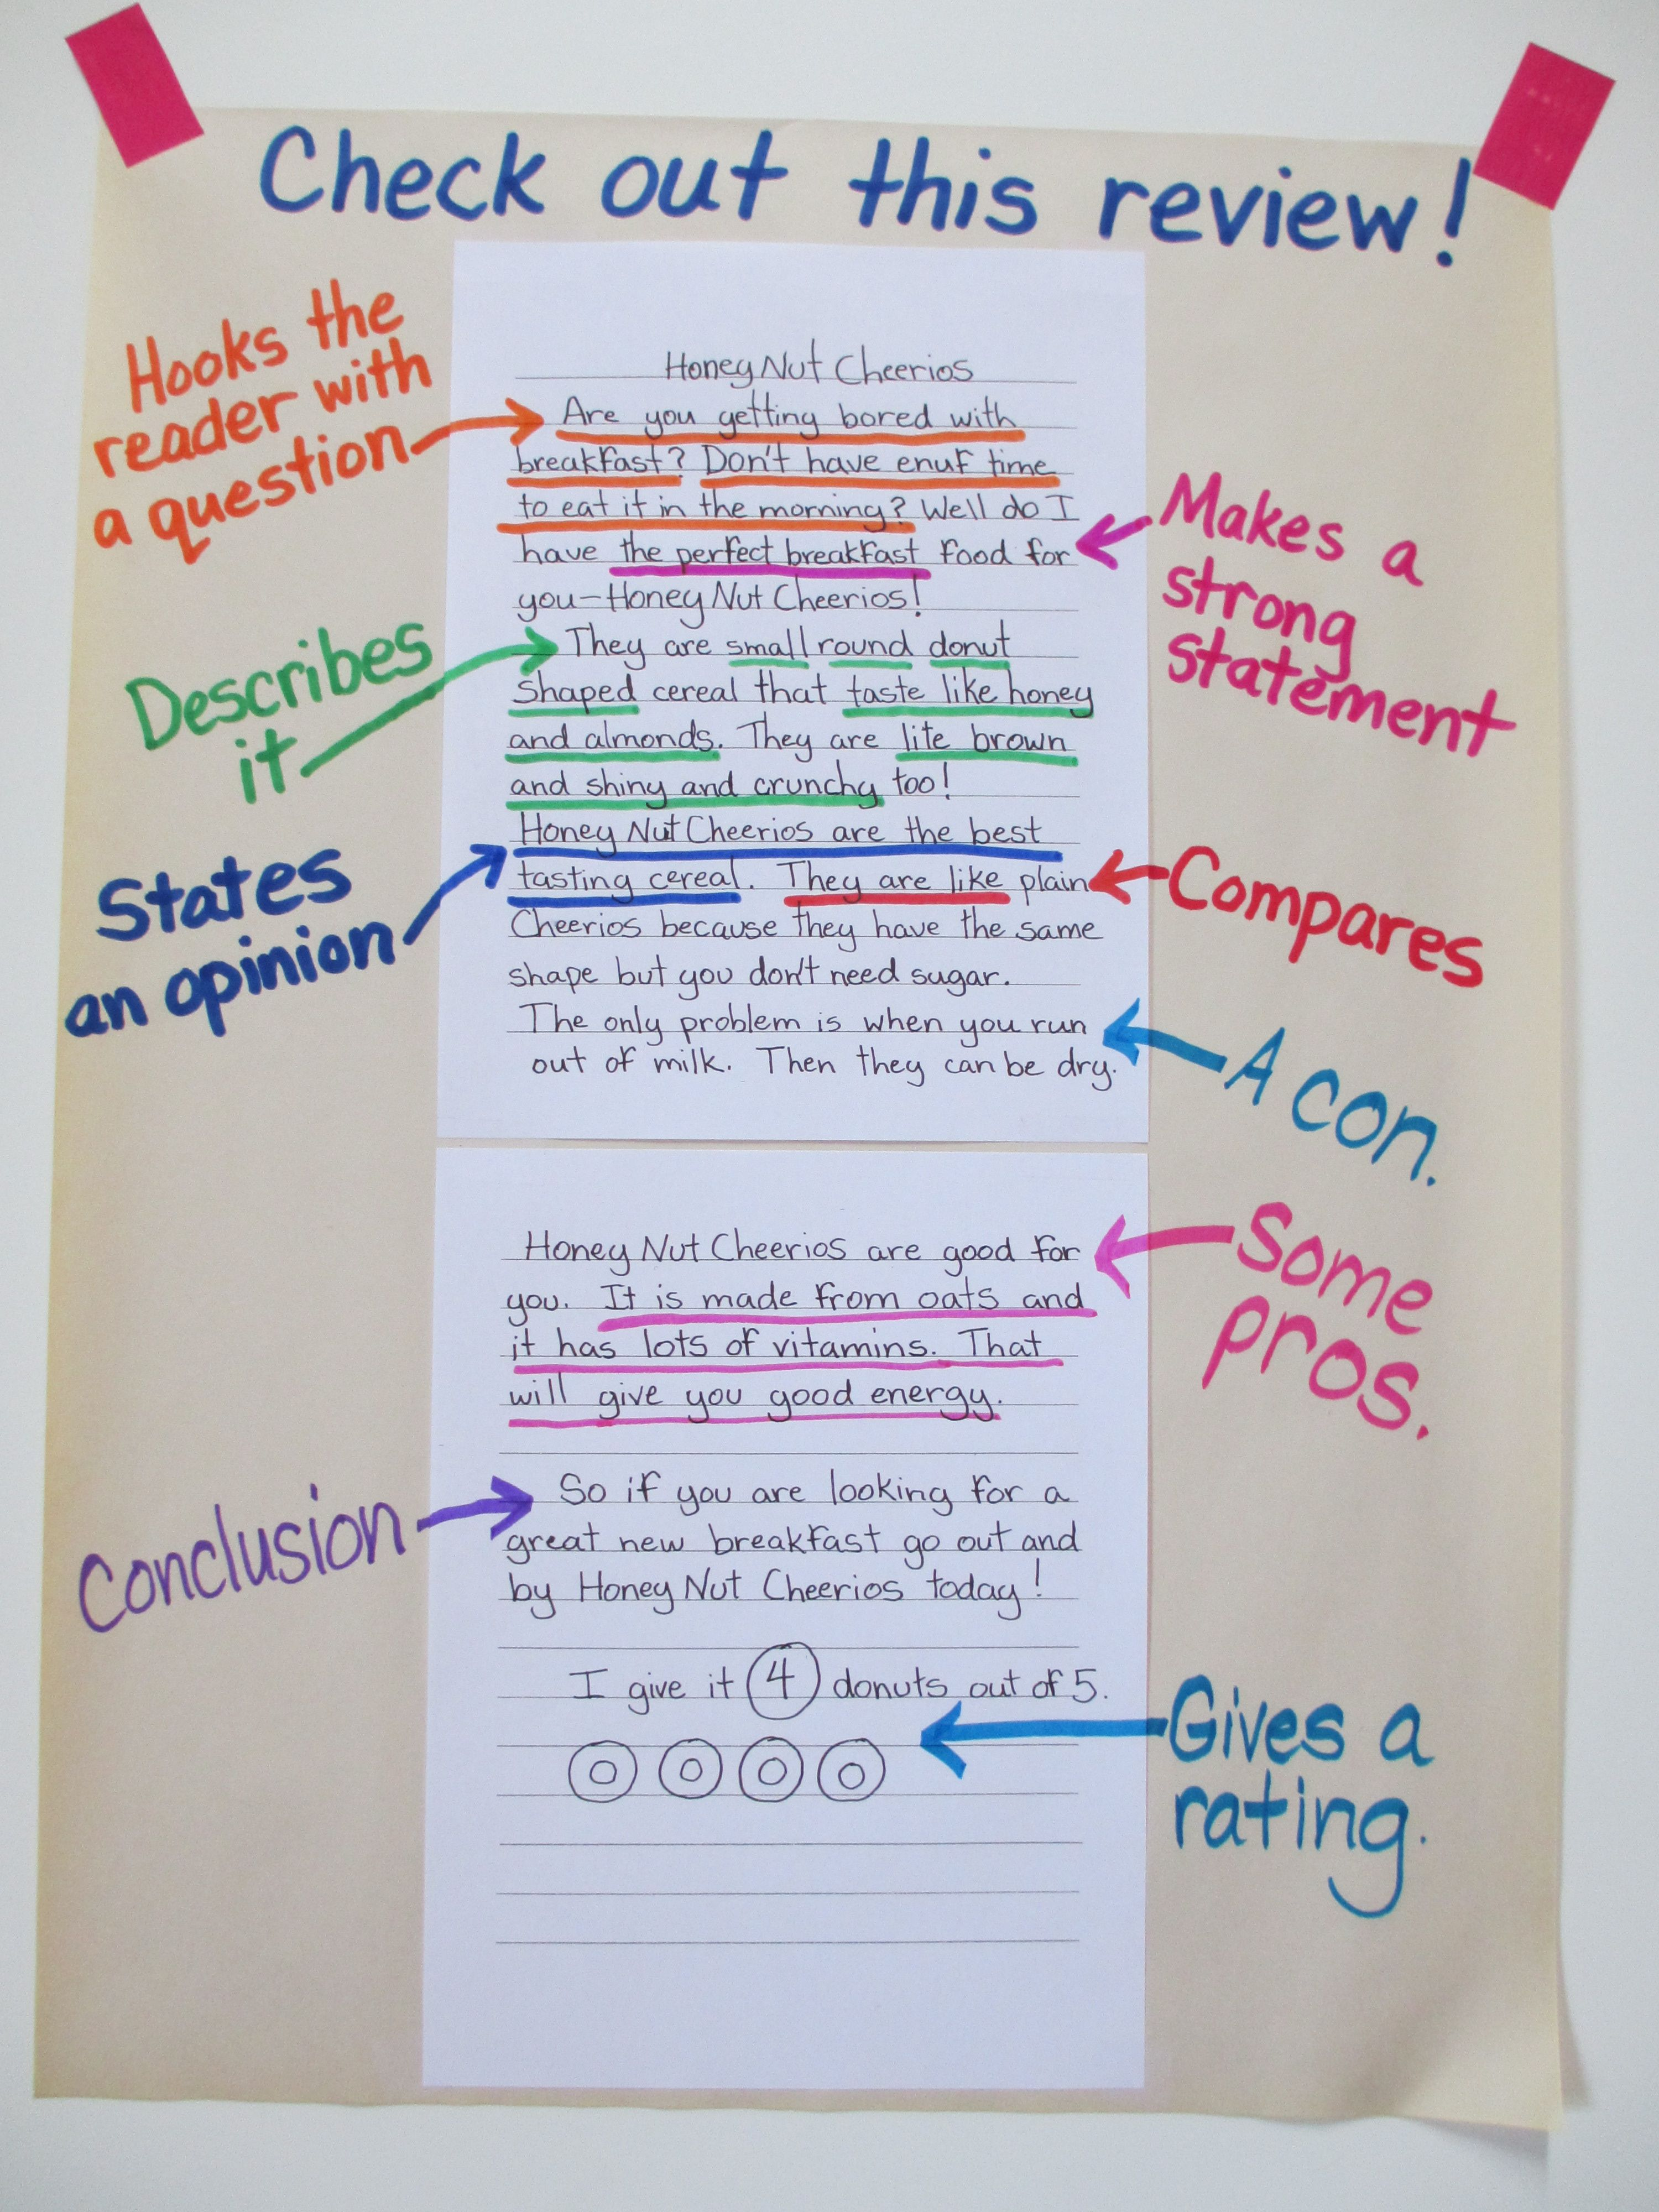 This blog has so many great ideas for charts that are perfect for Reader's and Writer's Workshop!  We use student samples often in mini-lessons - this is a great way to keep the ideas alive.